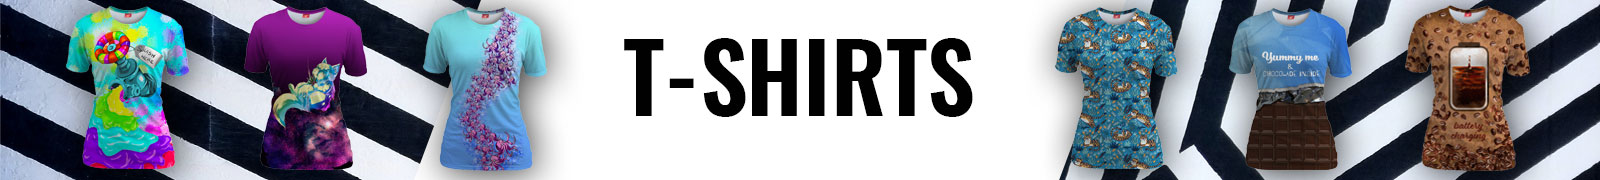 T-shirts for her